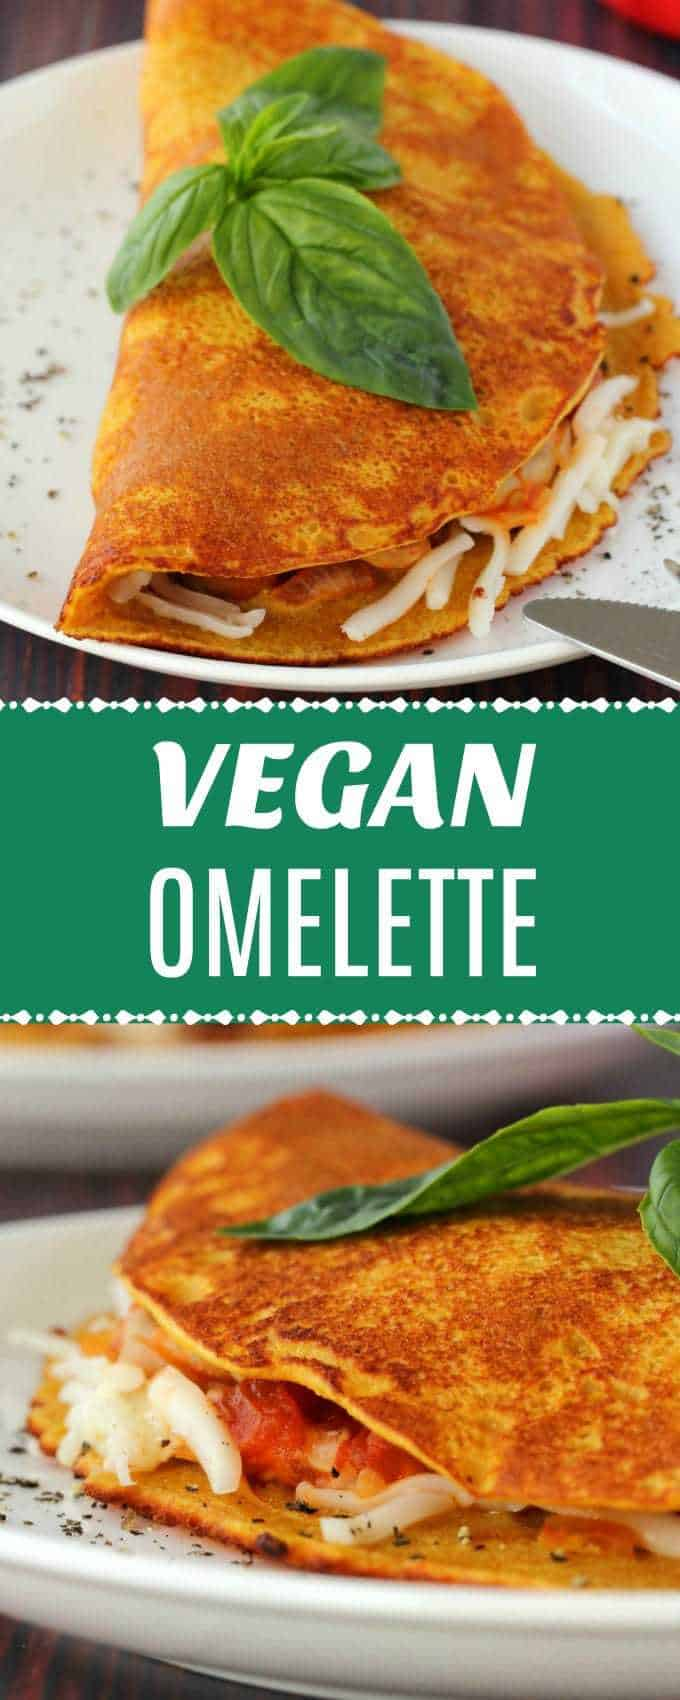 Light and fluffy vegan omelette served with sautéed mushrooms, tomatoes, onion, vegan cheese and vegan sausage for a fabulous vegan breakfast of champions. | lovingitvegan.com